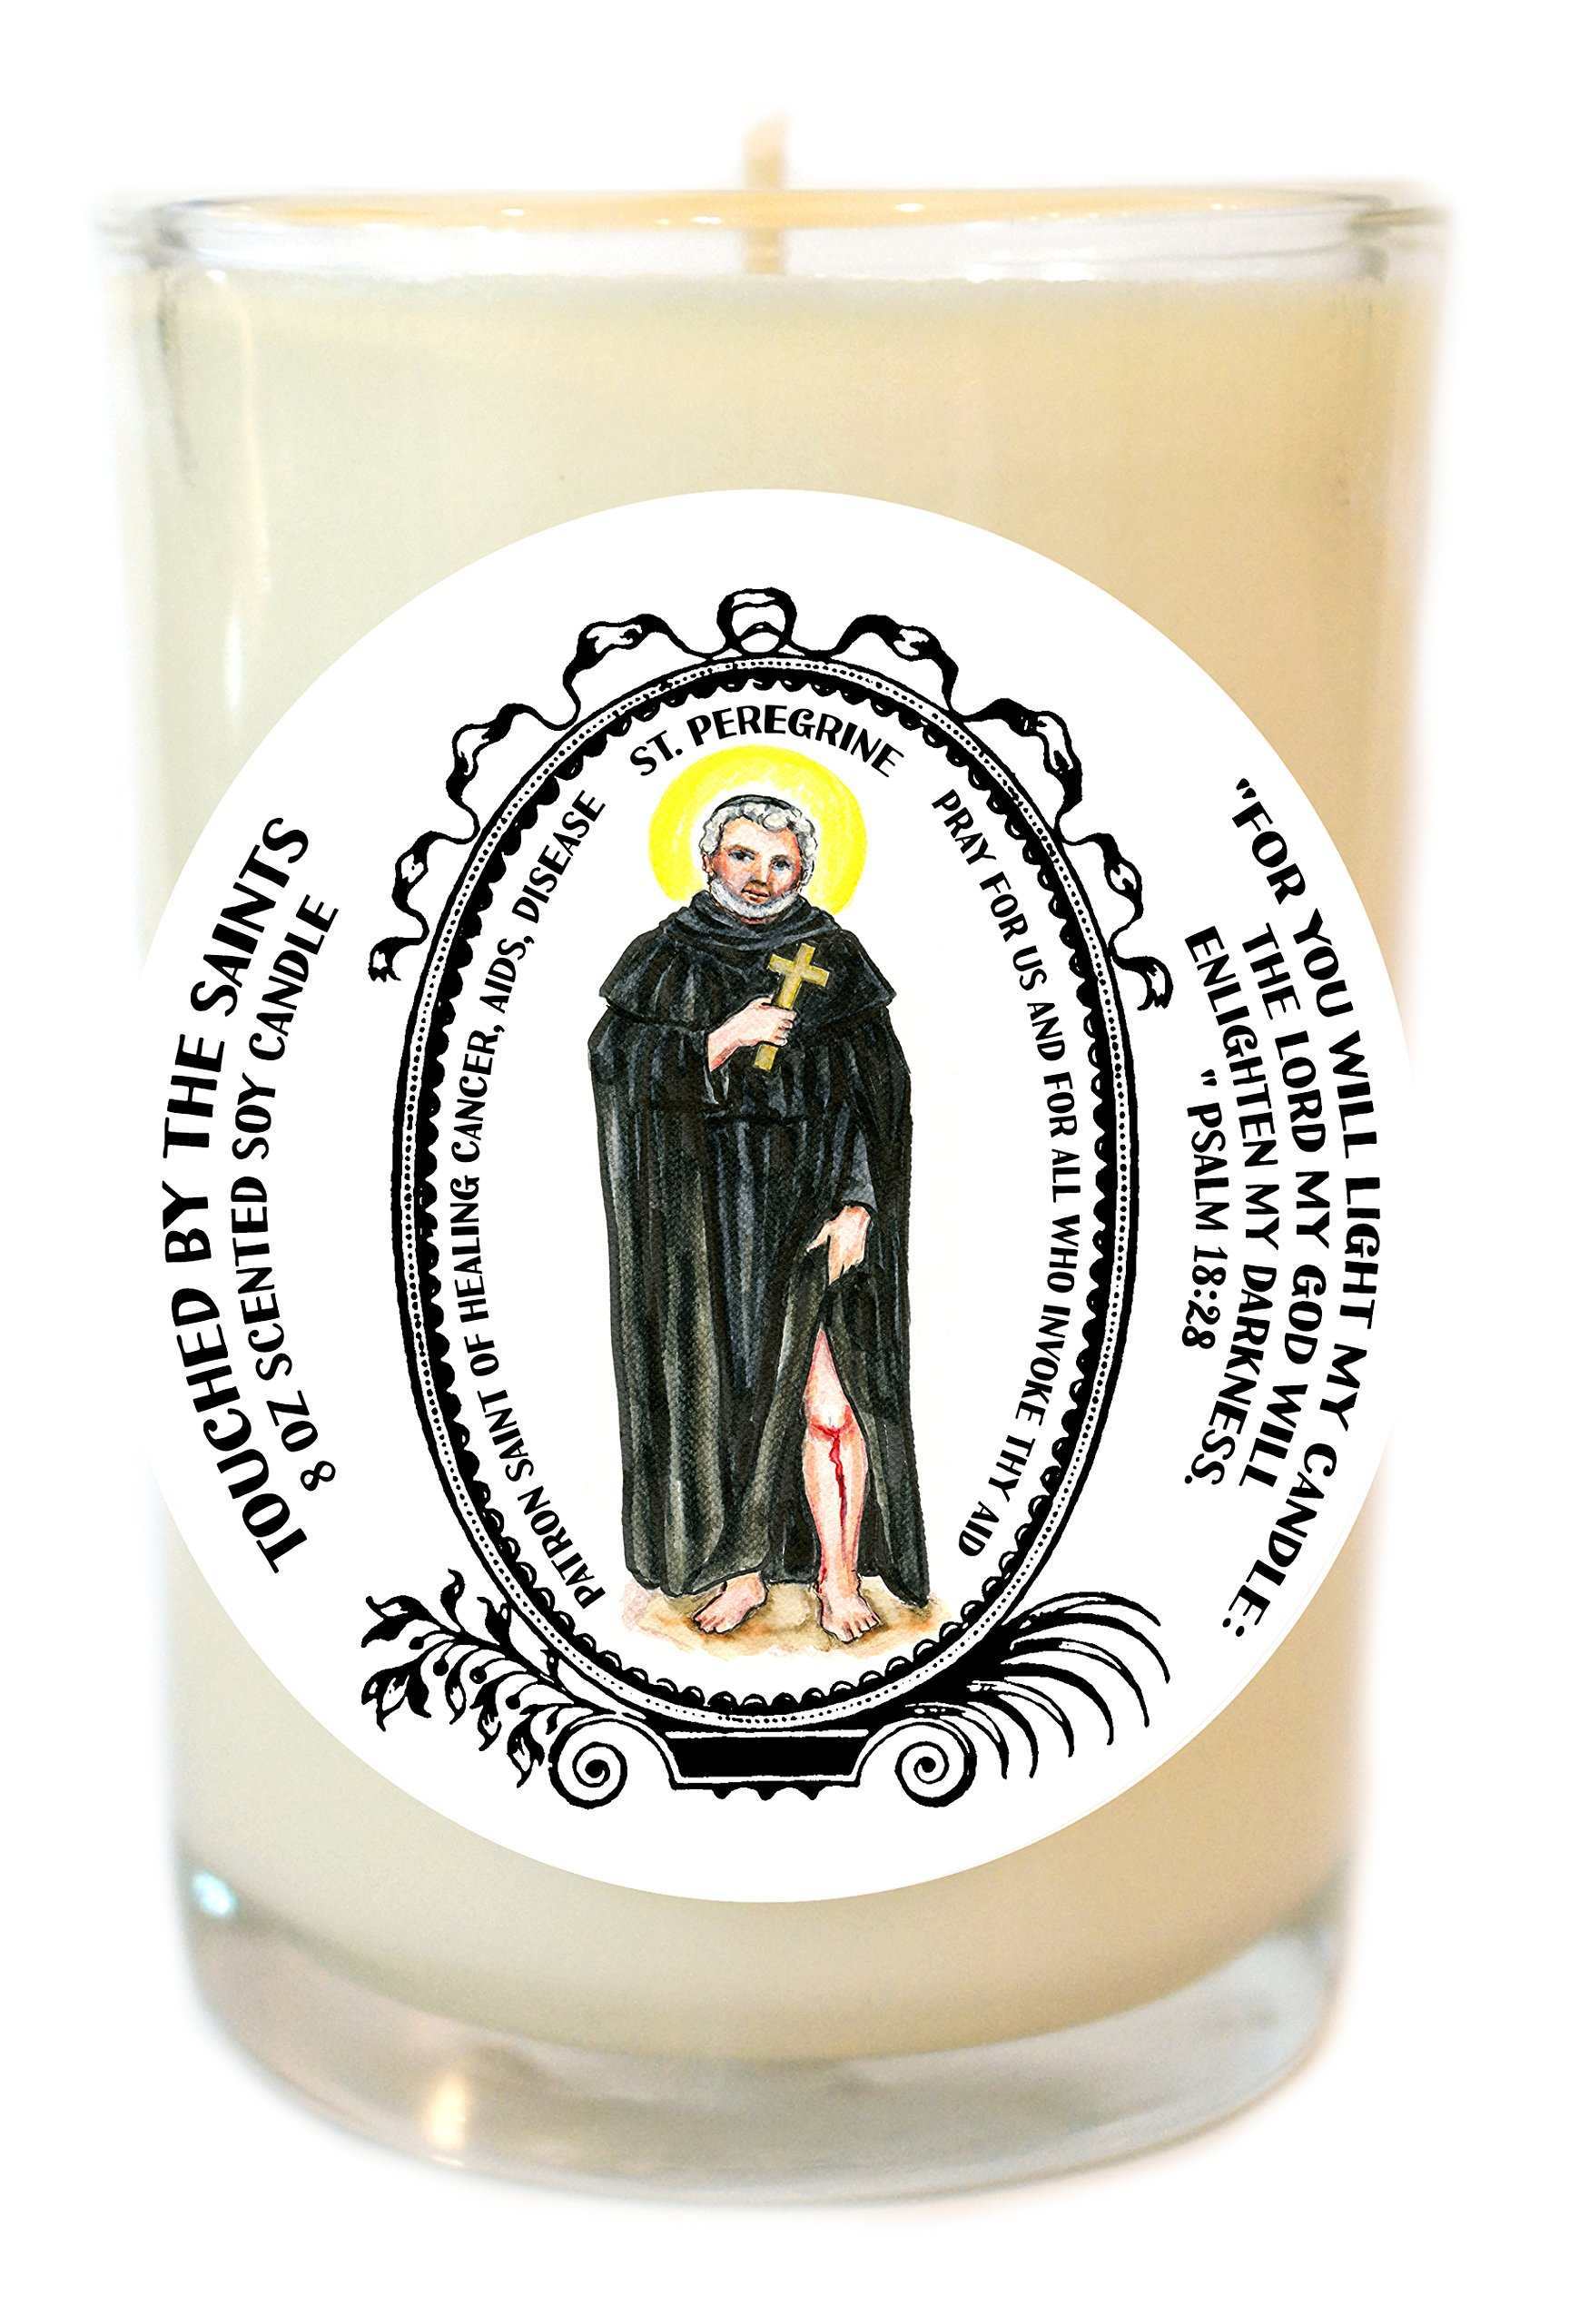 Saint Peregrine of Healing Disease 8 Oz Scented Soy Glass Prayer Candle